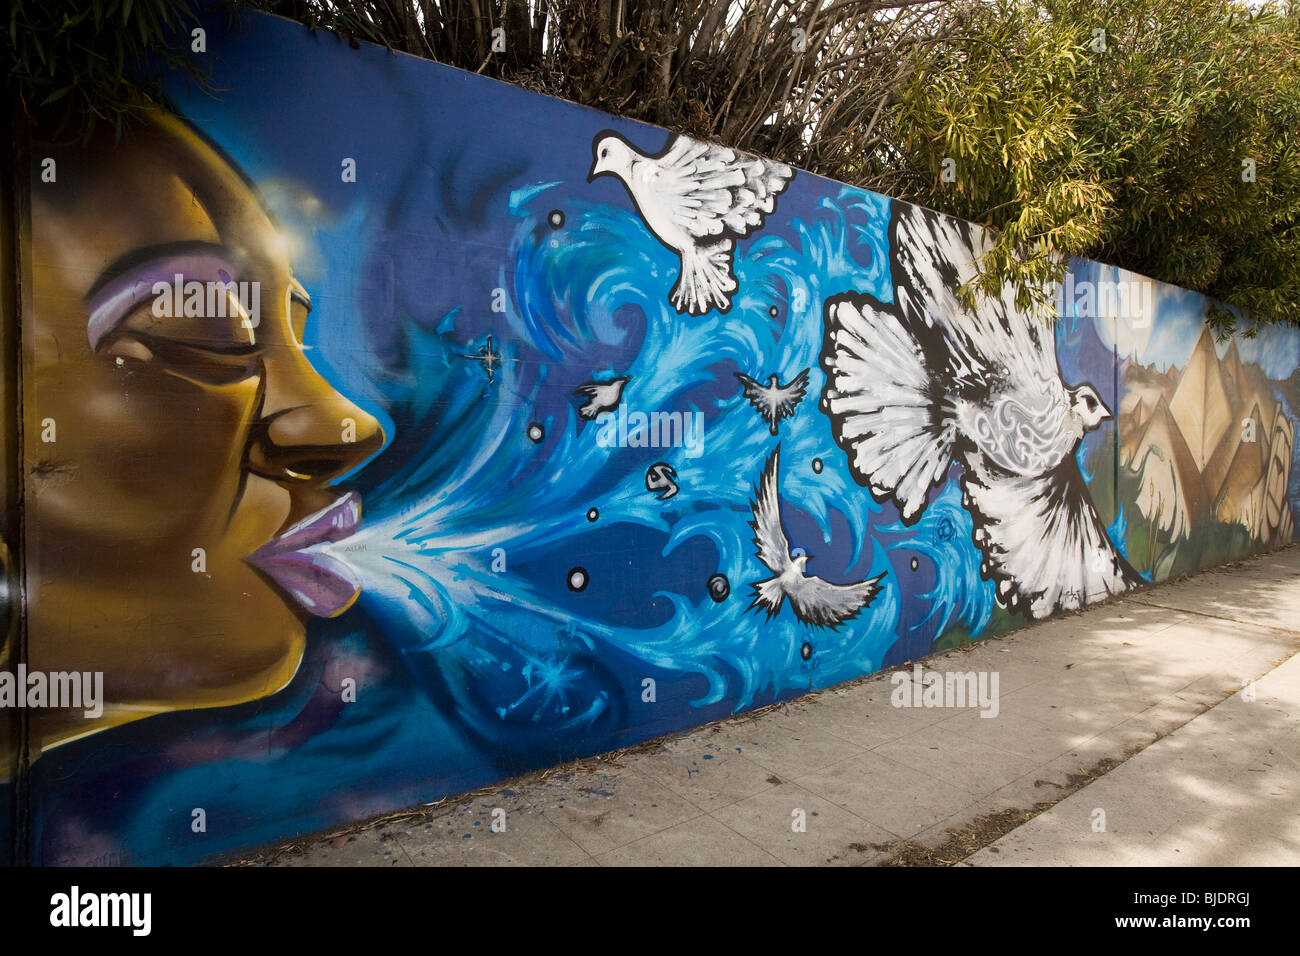 The Crenshaw Wall, Inglewood, Los Angeles County, California, United States of America - Stock Image